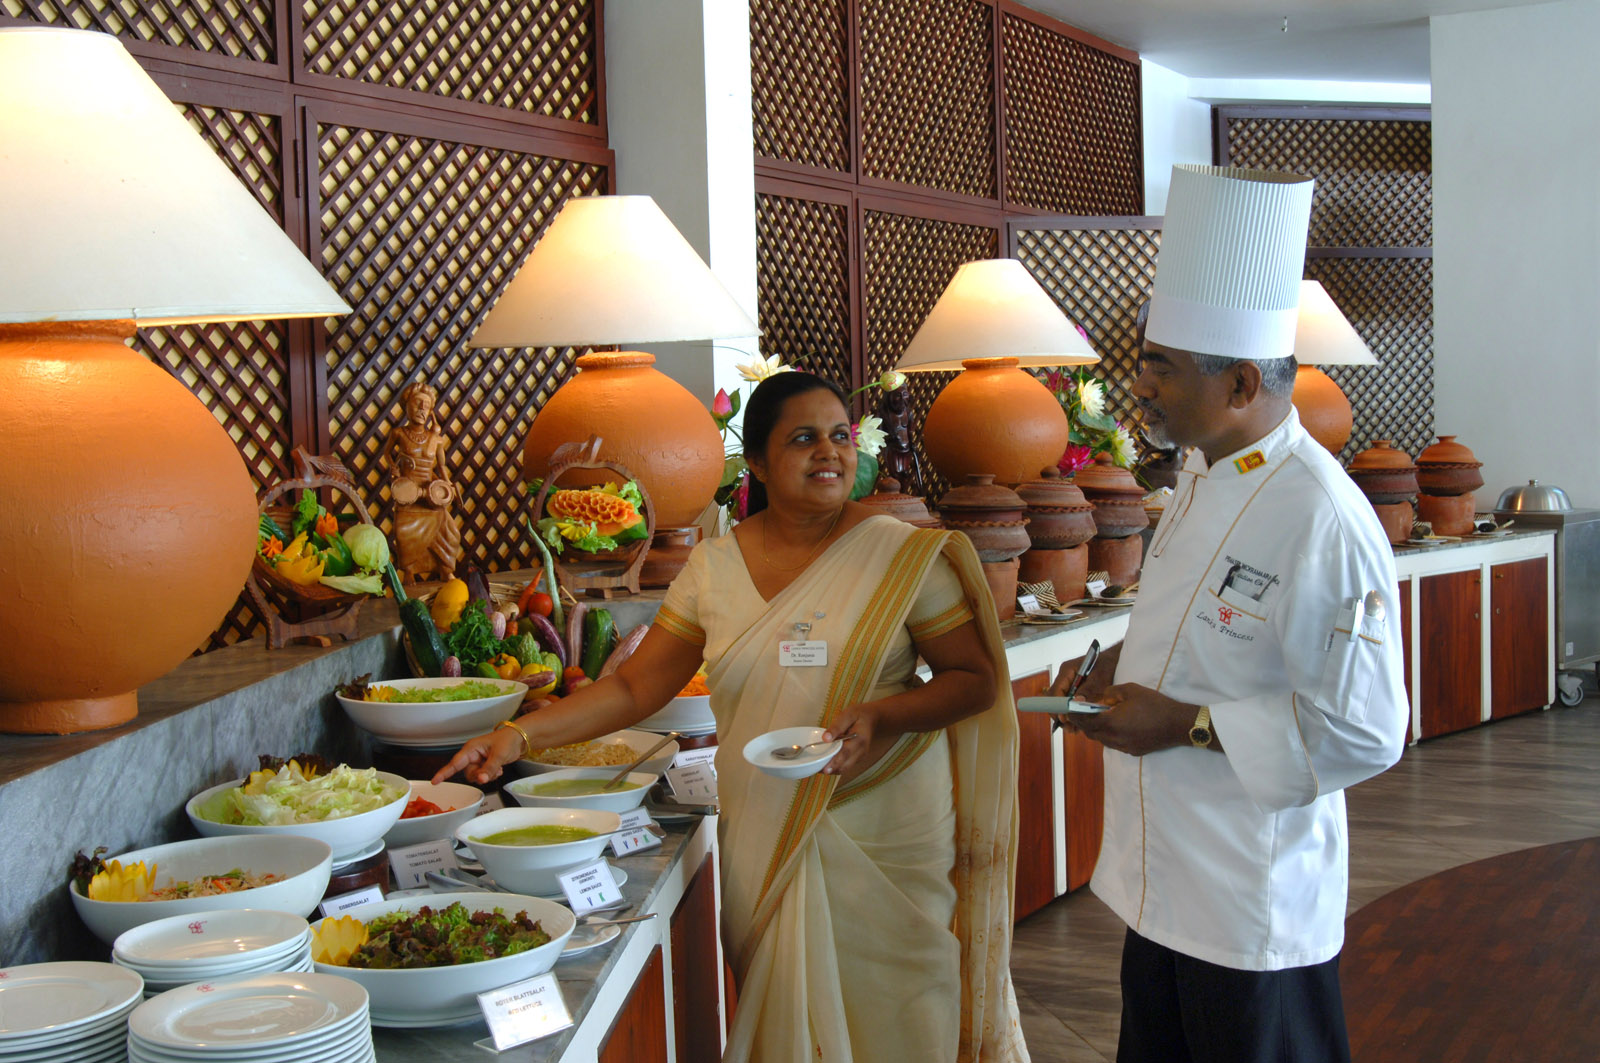 https://www.lankaprincess.com/wp-content/uploads/2014/12/Ayurveda-Restaurant-Lanka-Princess-New-batch-12-61.jpg